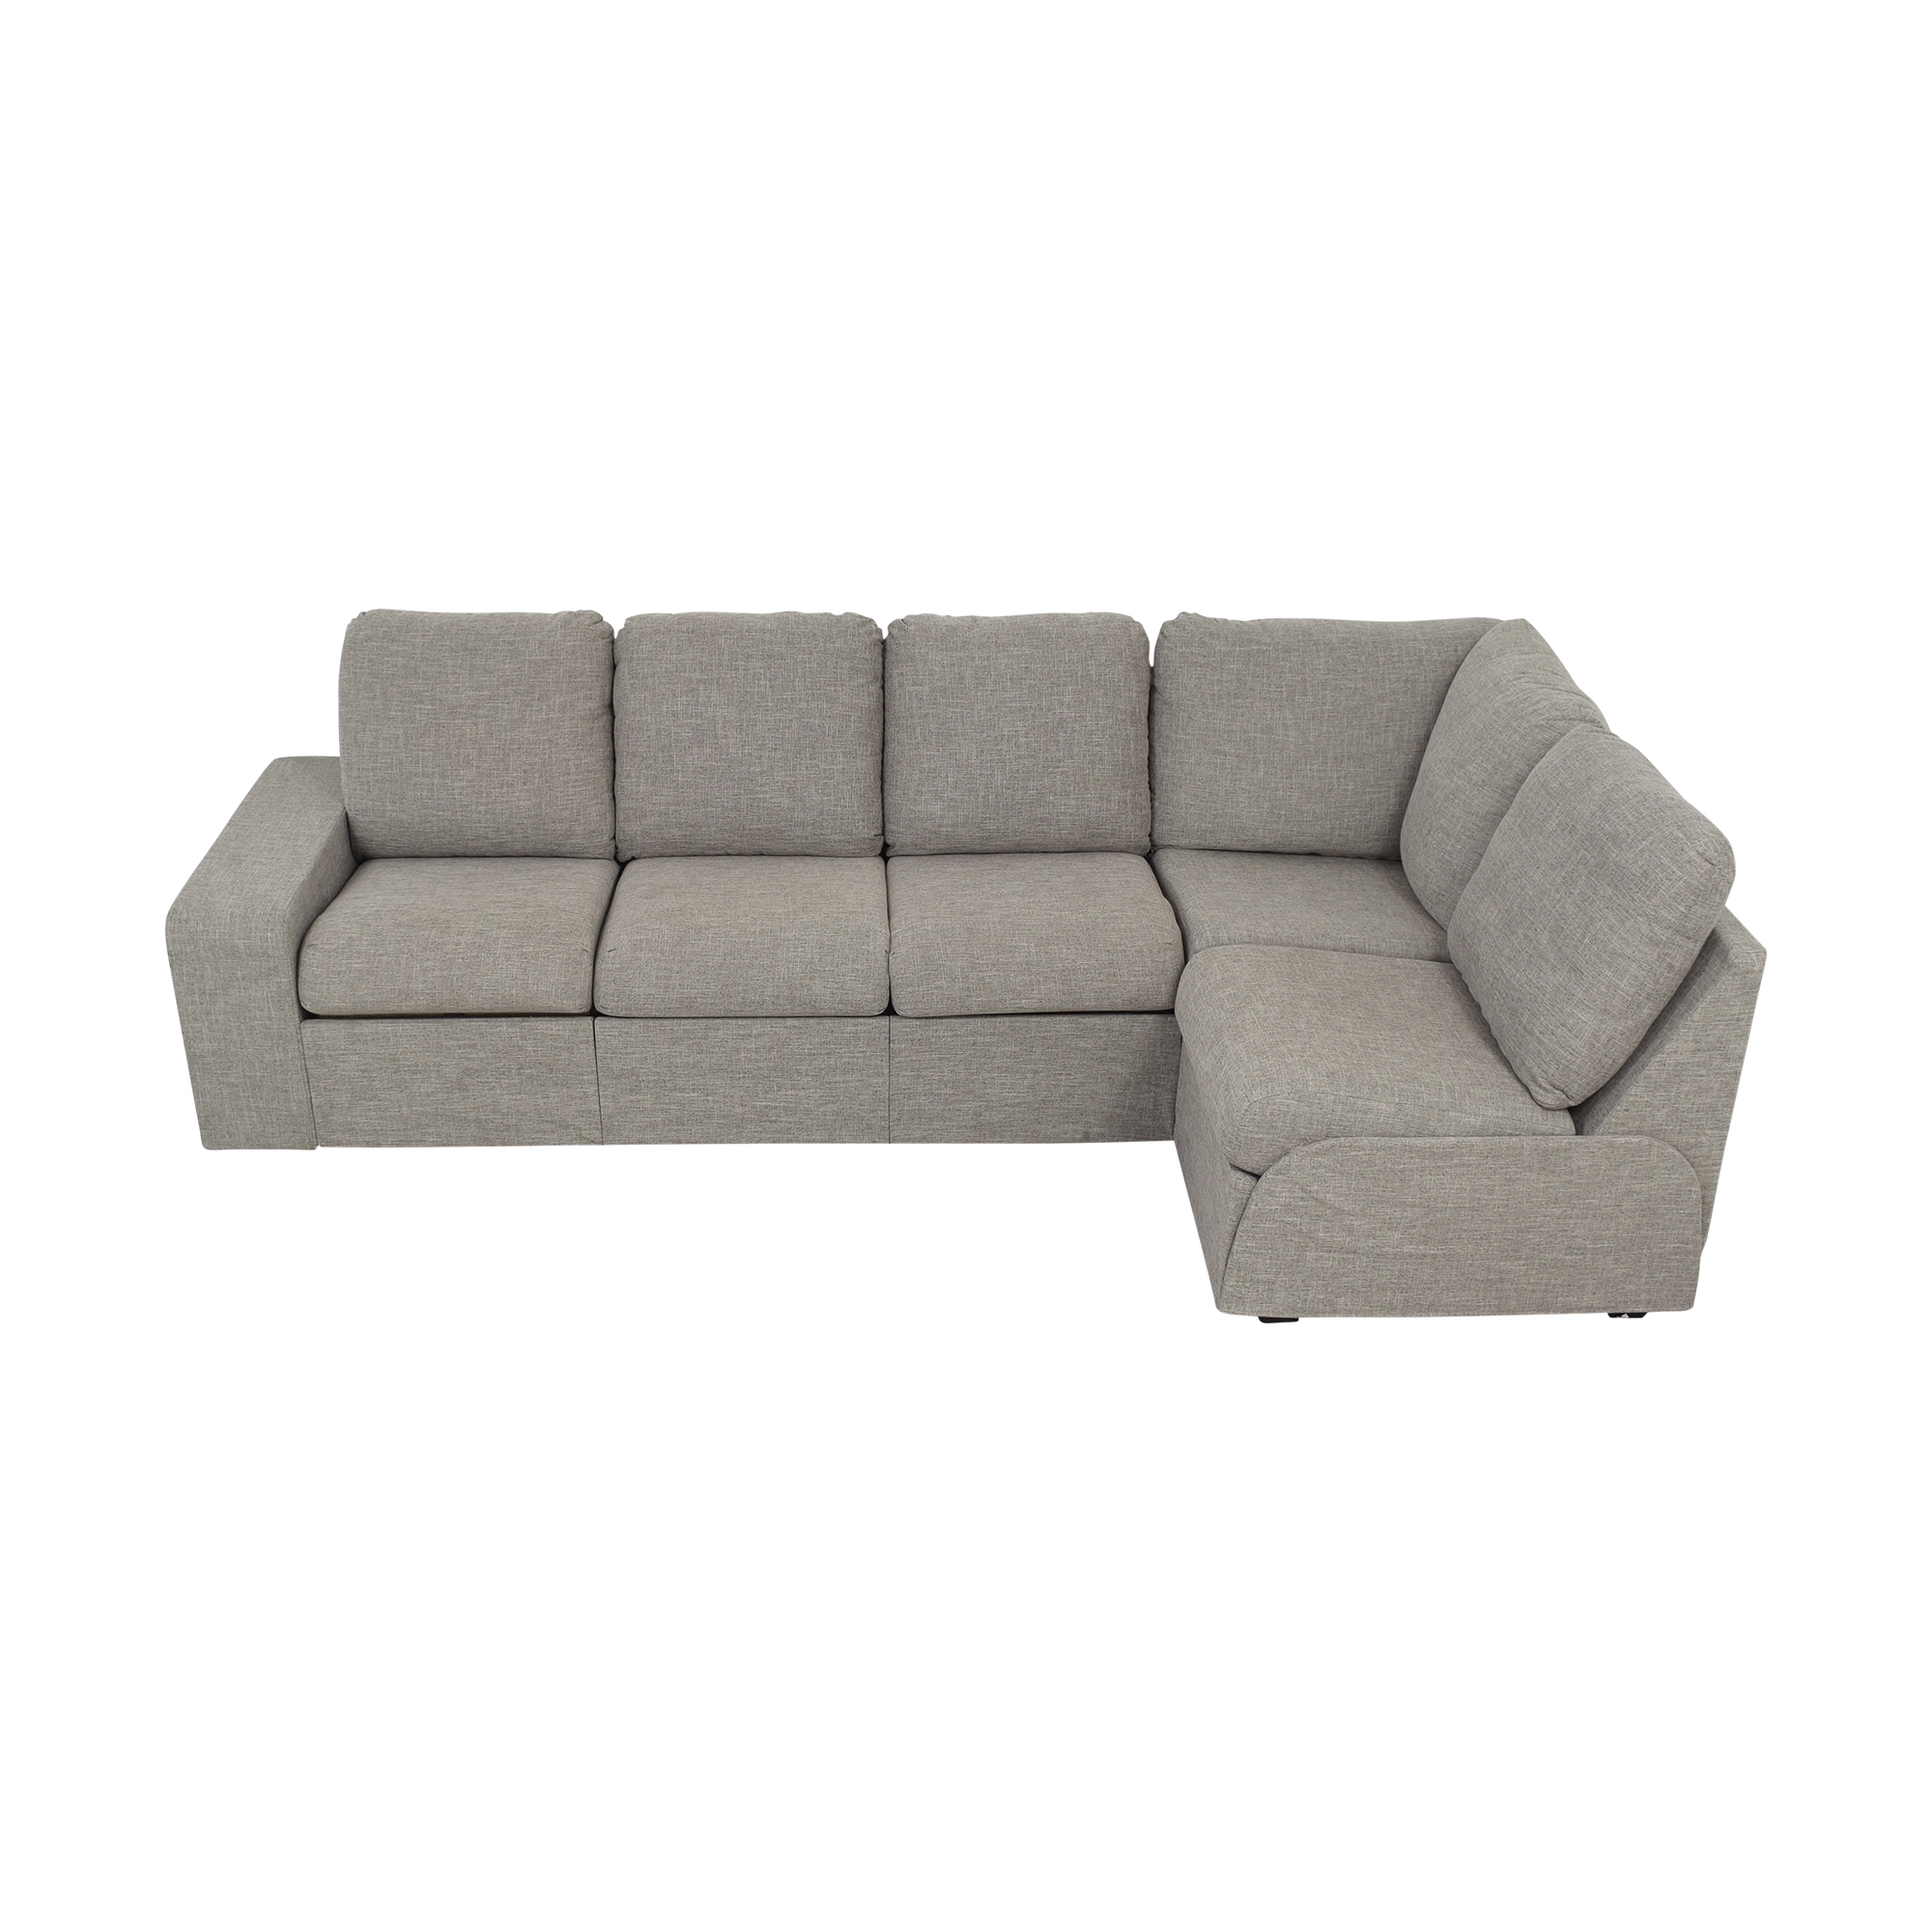 Home Reserve Home Reserve Jovie Sectional with Ottoman dimensions